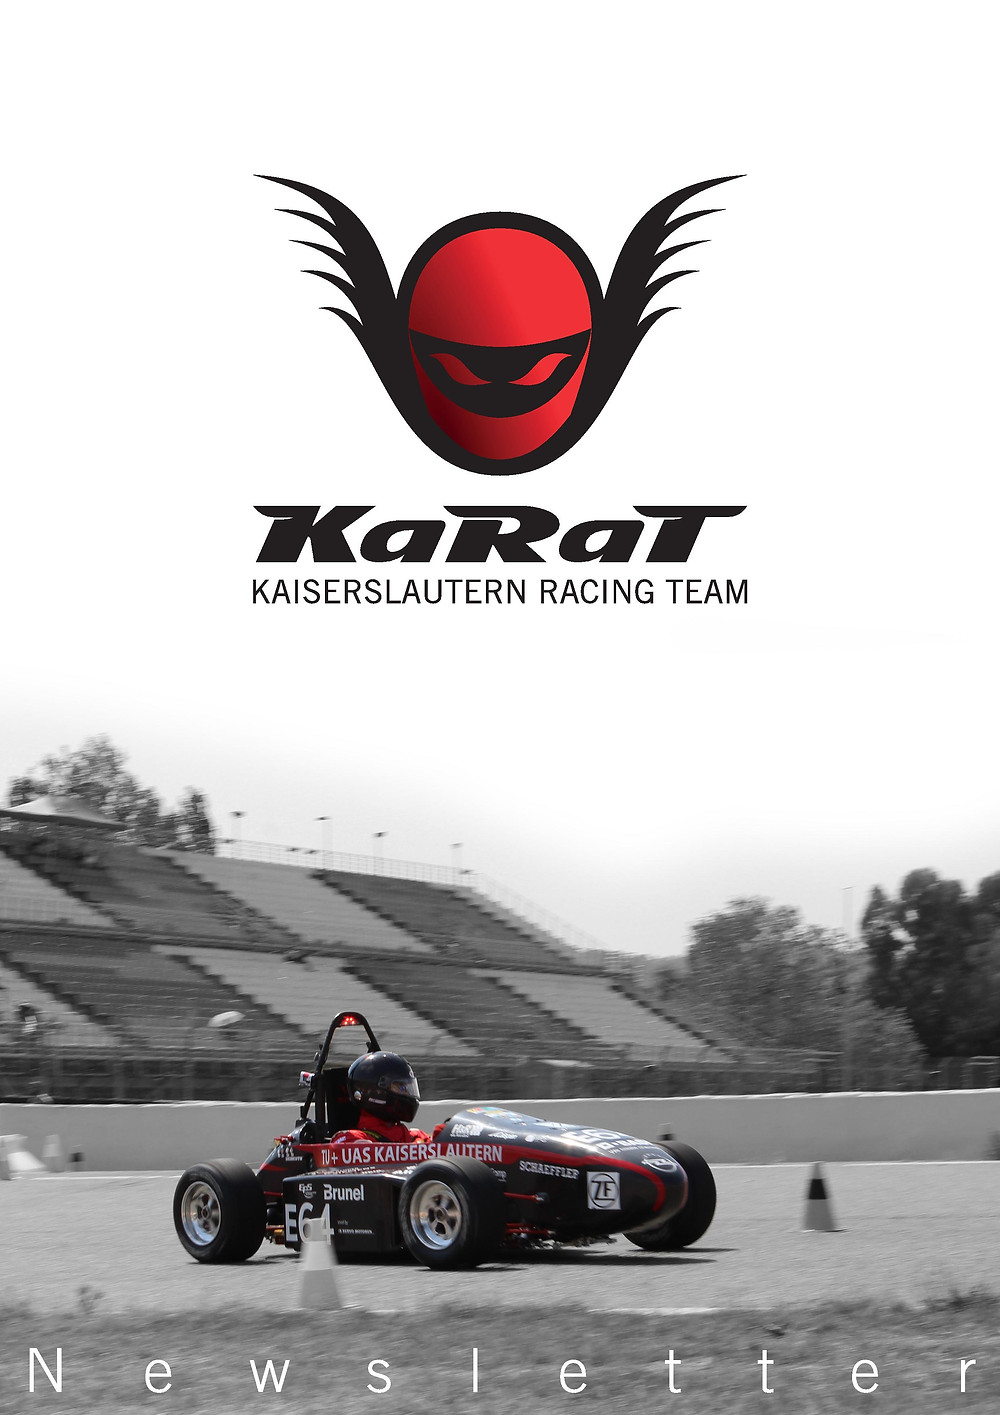 Karat Kaiserslautern Racing Team